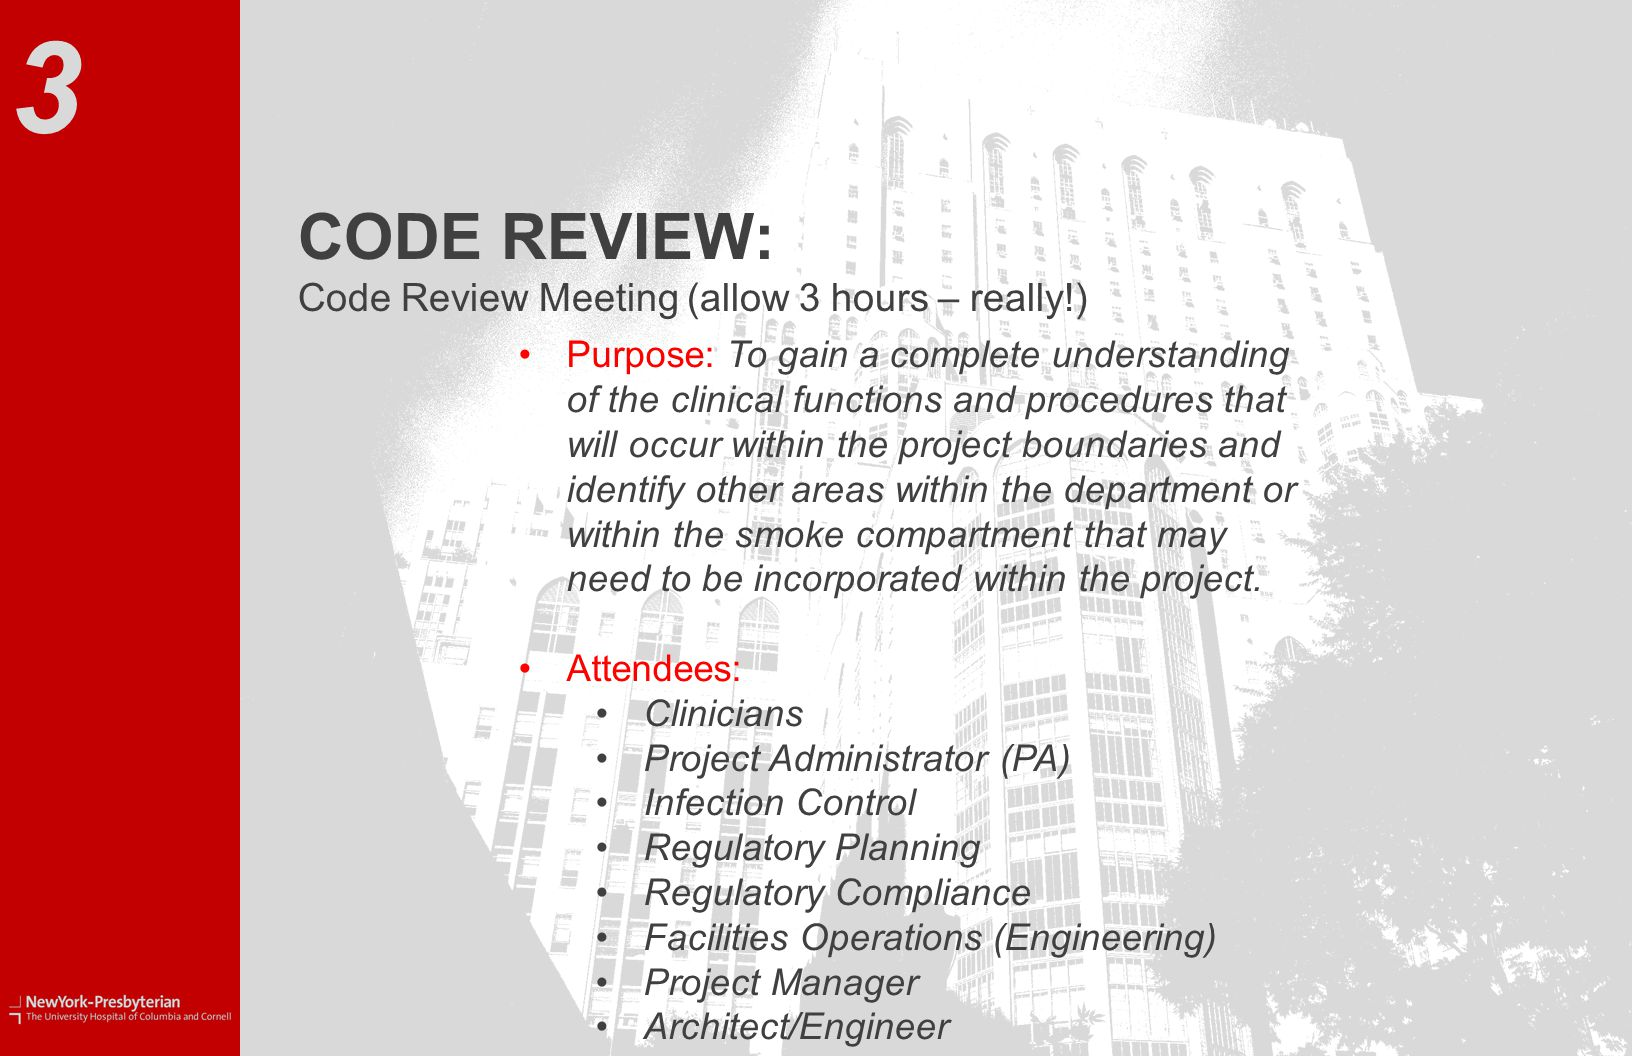 CODE REVIEW: Code Review Meeting (allow 3 hours – really!) 3 Purpose: To gain a complete understanding of the clinical functions and procedures that will occur within the project boundaries and identify other areas within the department or within the smoke compartment that may need to be incorporated within the project.